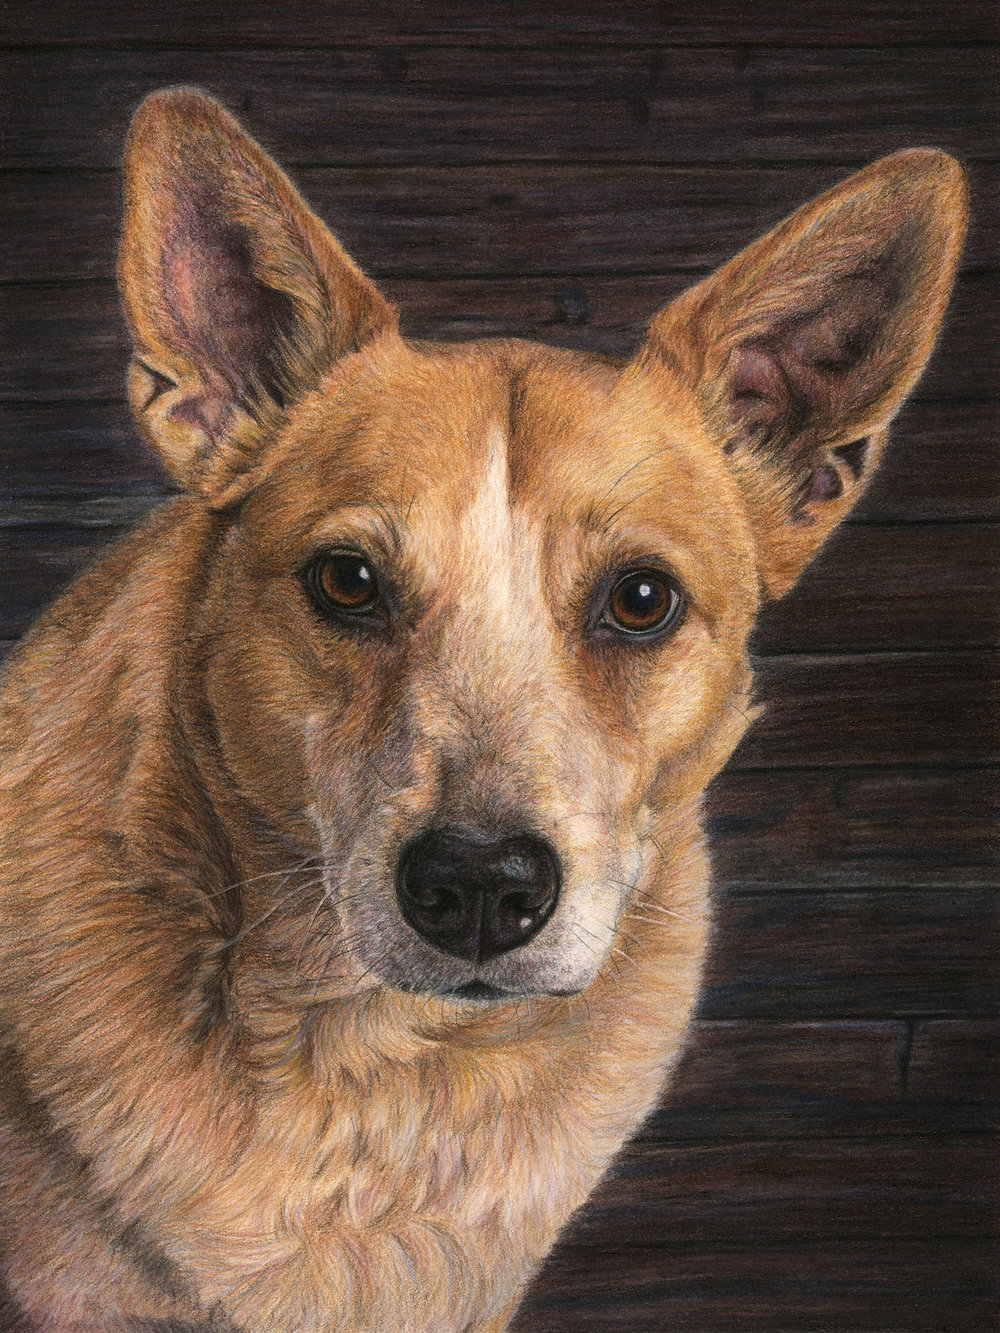 Colored Pencil - Realism and detail